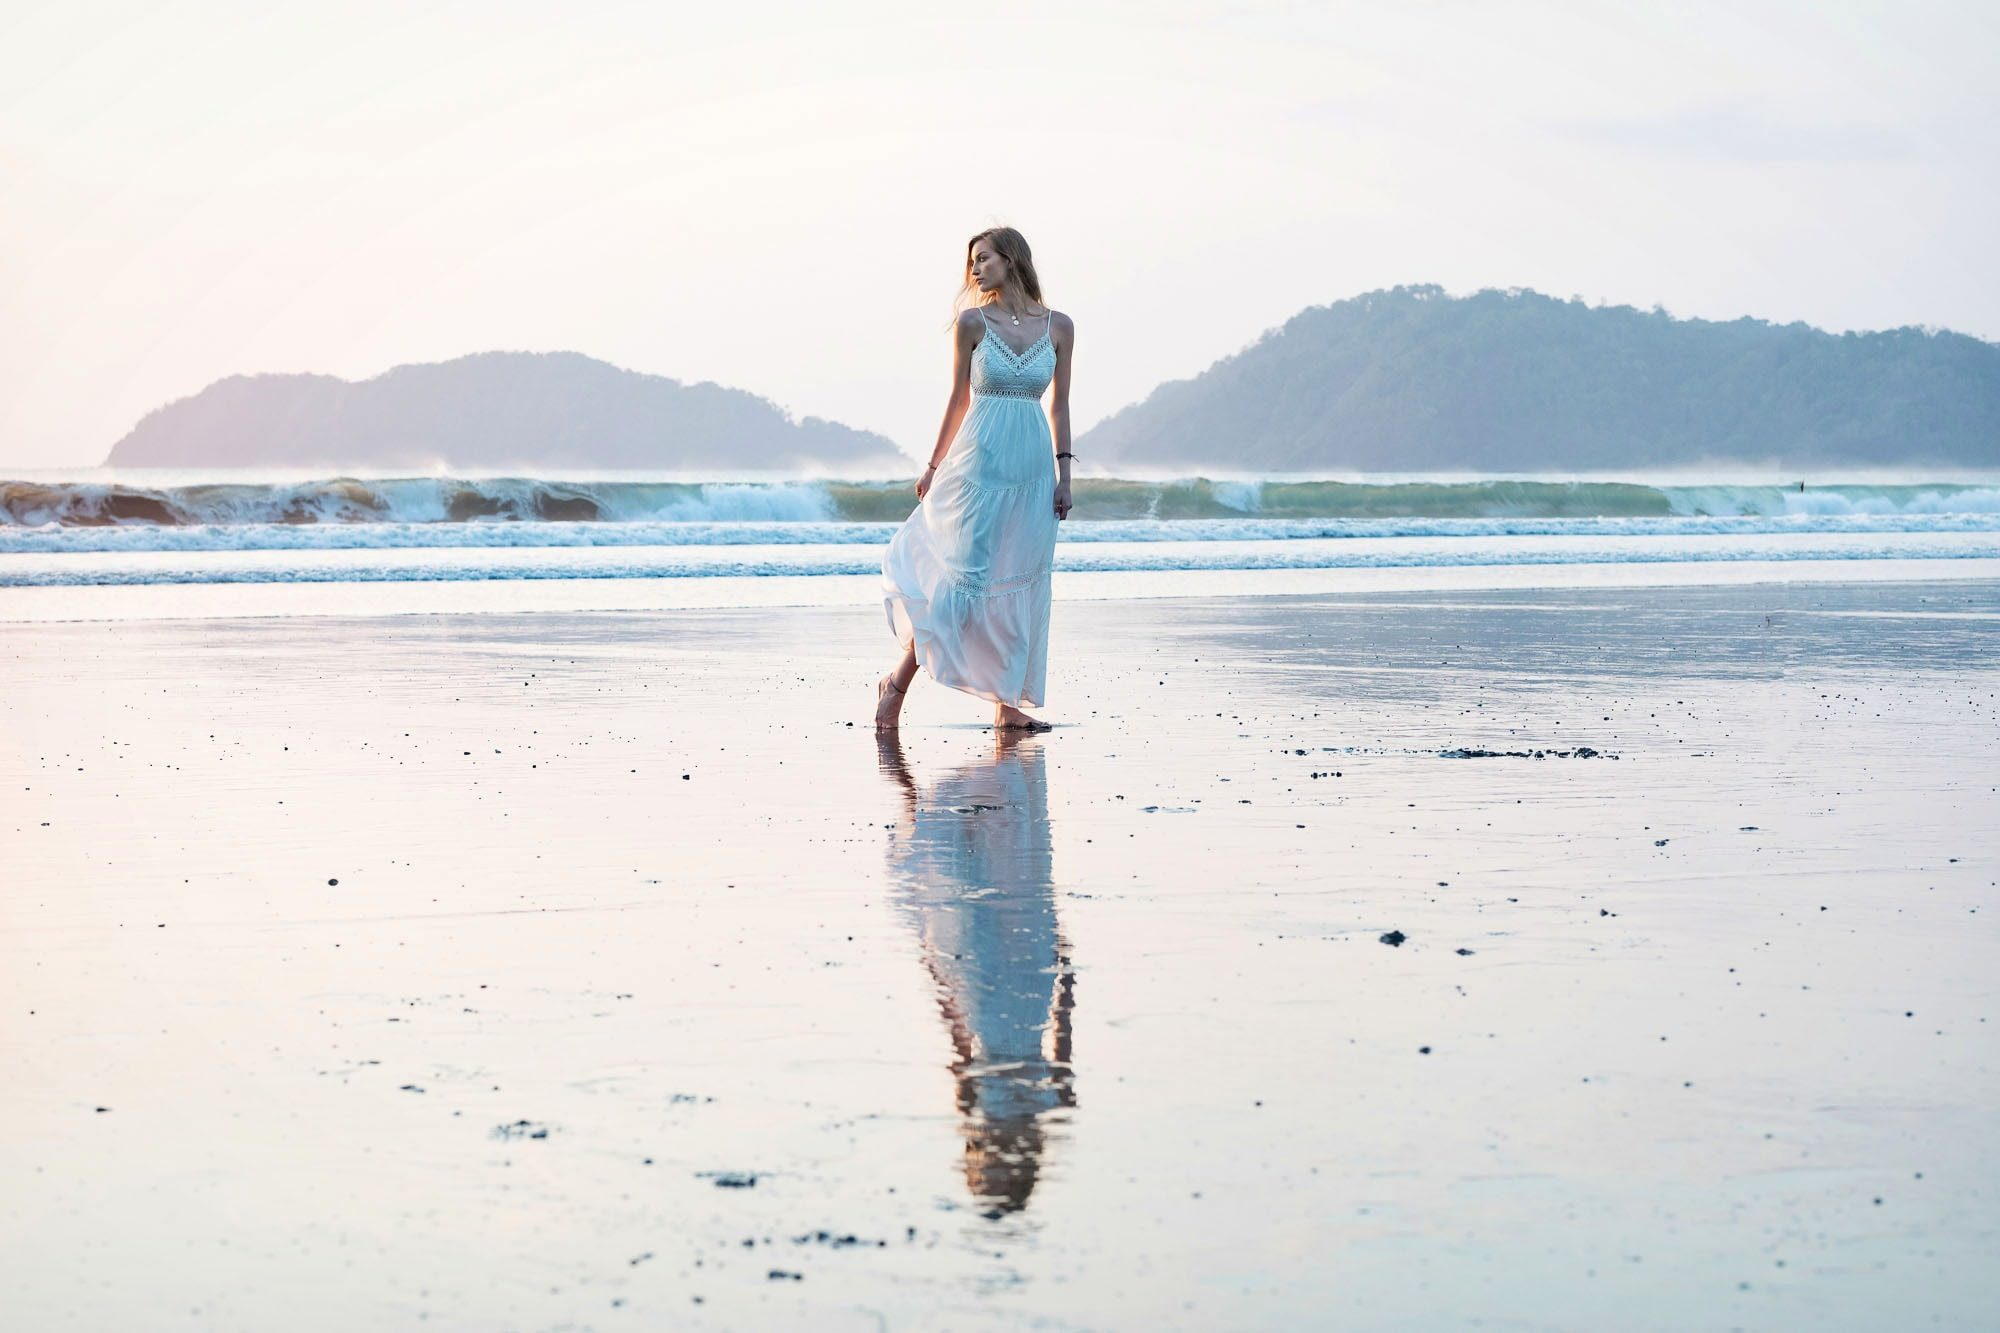 Walking along the beach in a beautiful white dress